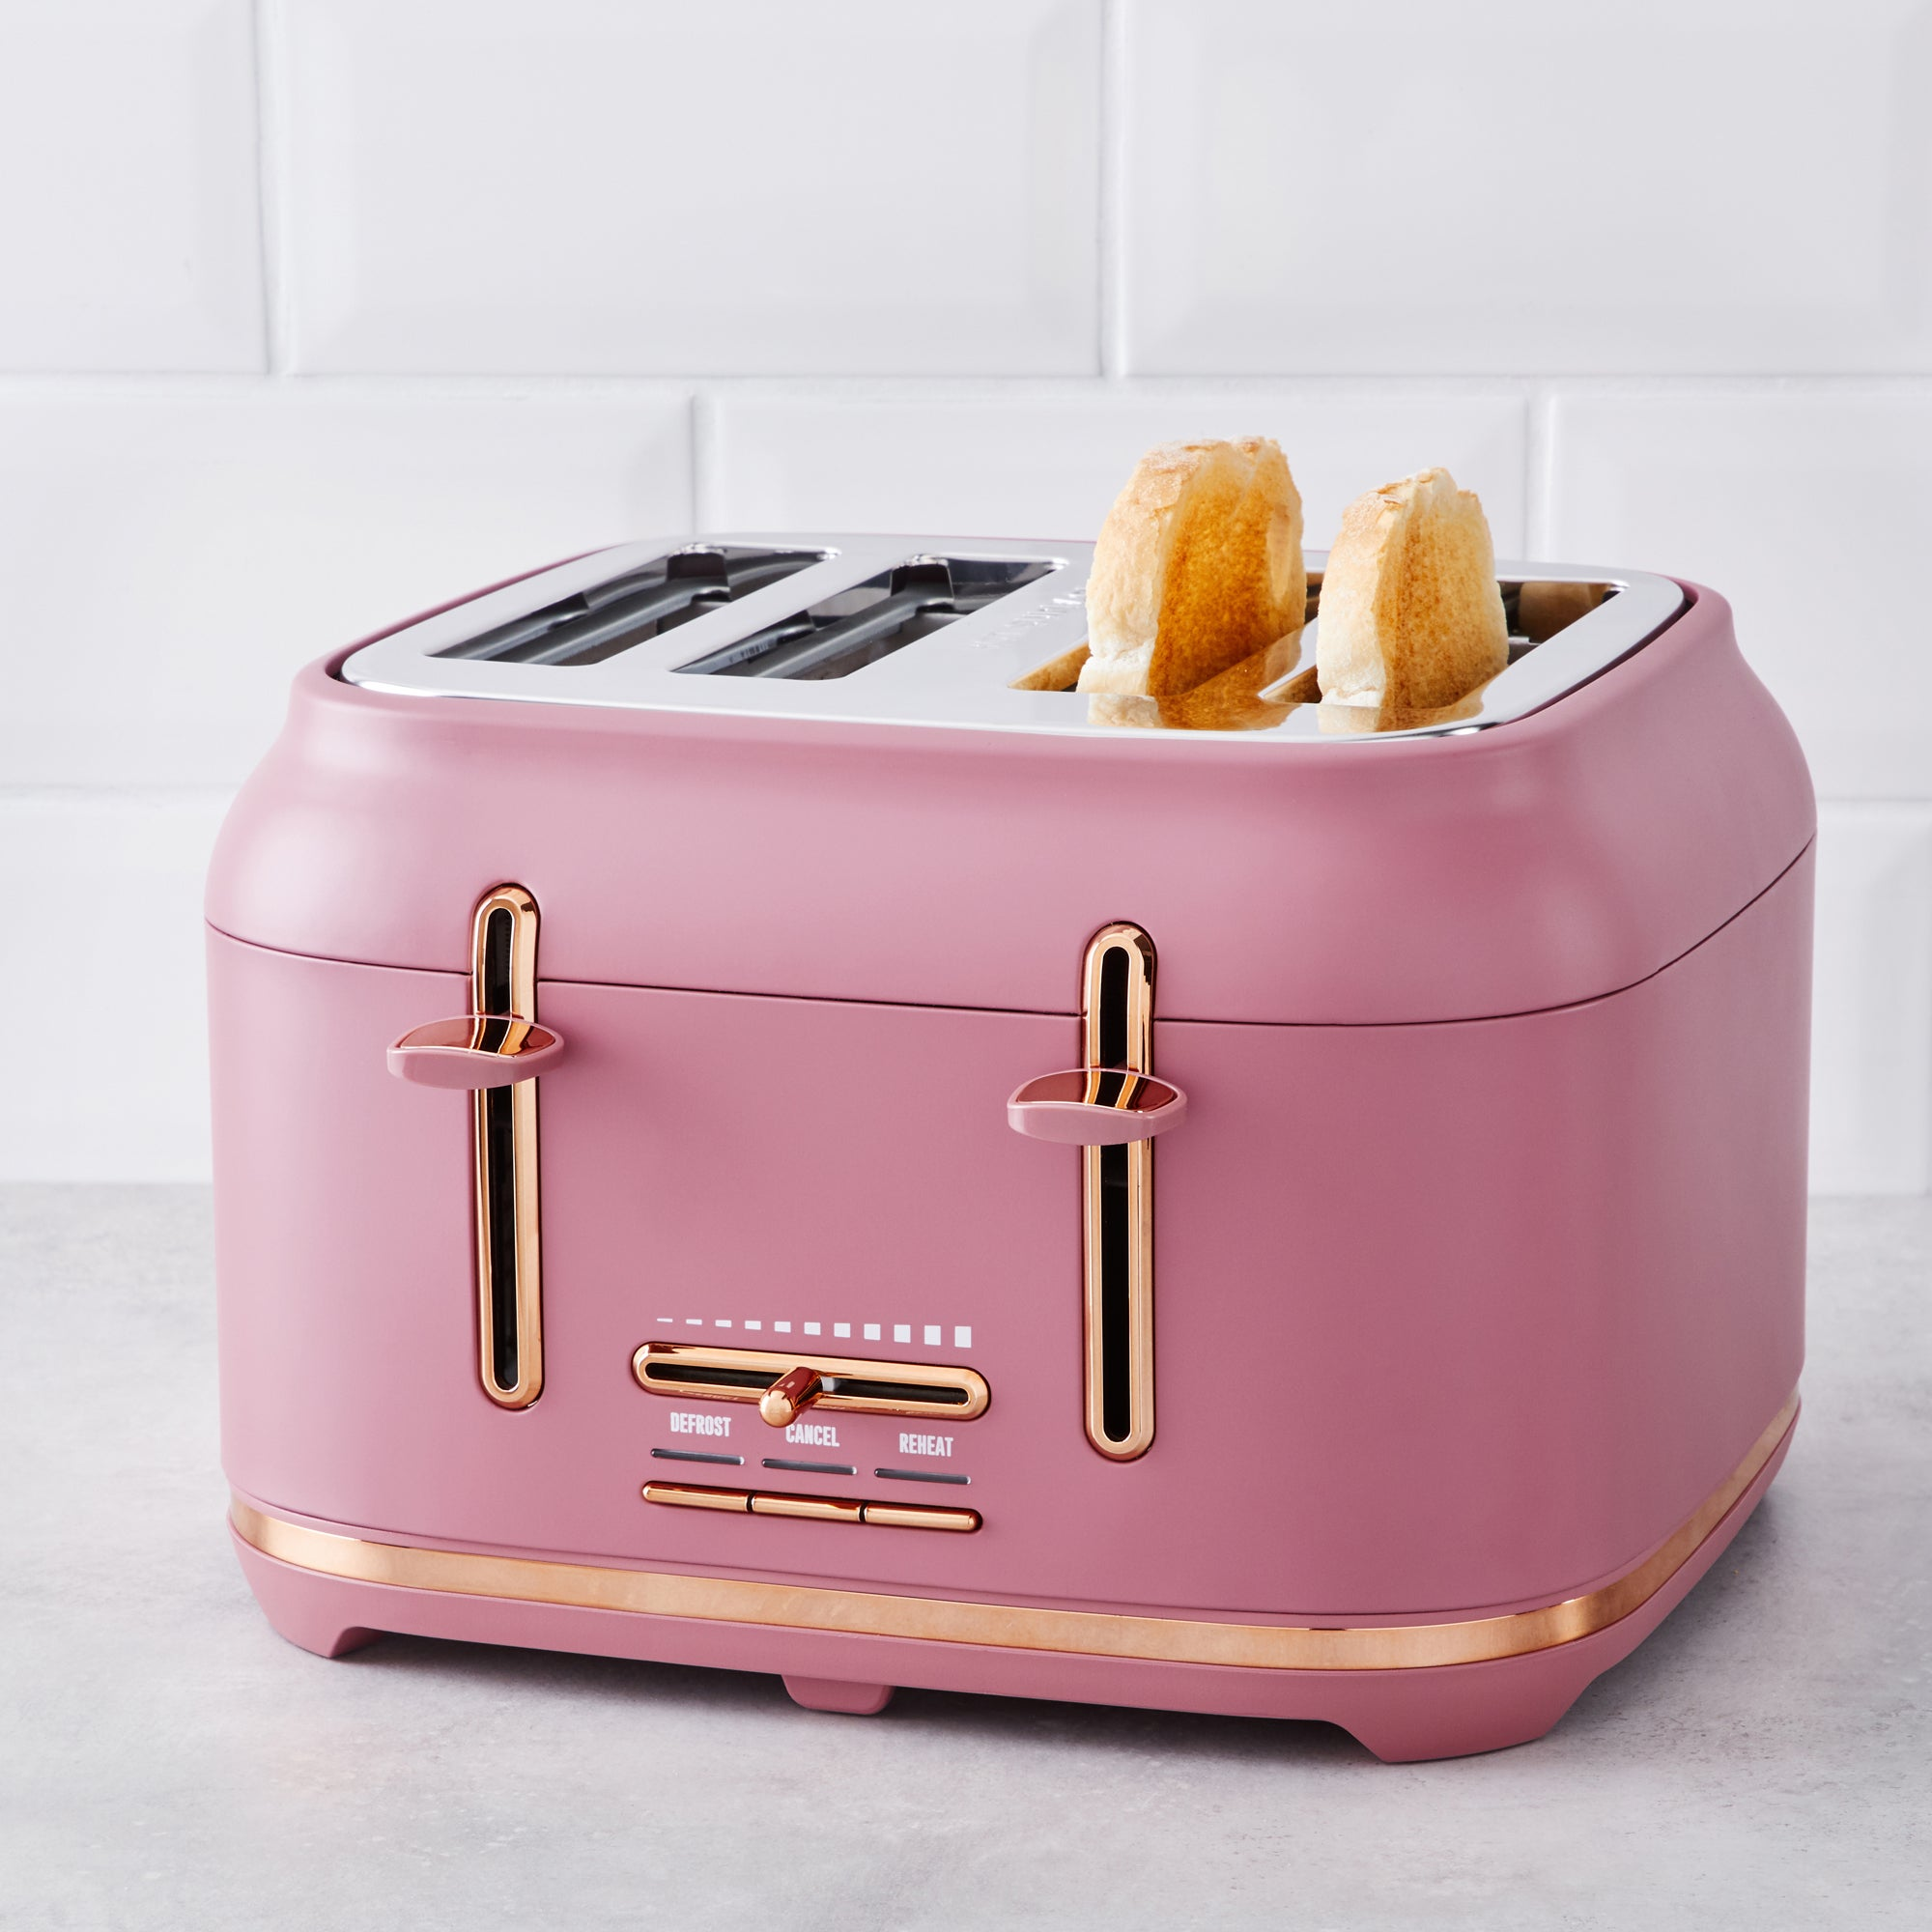 Blush With Copper Accents Toaster Pink And Silver